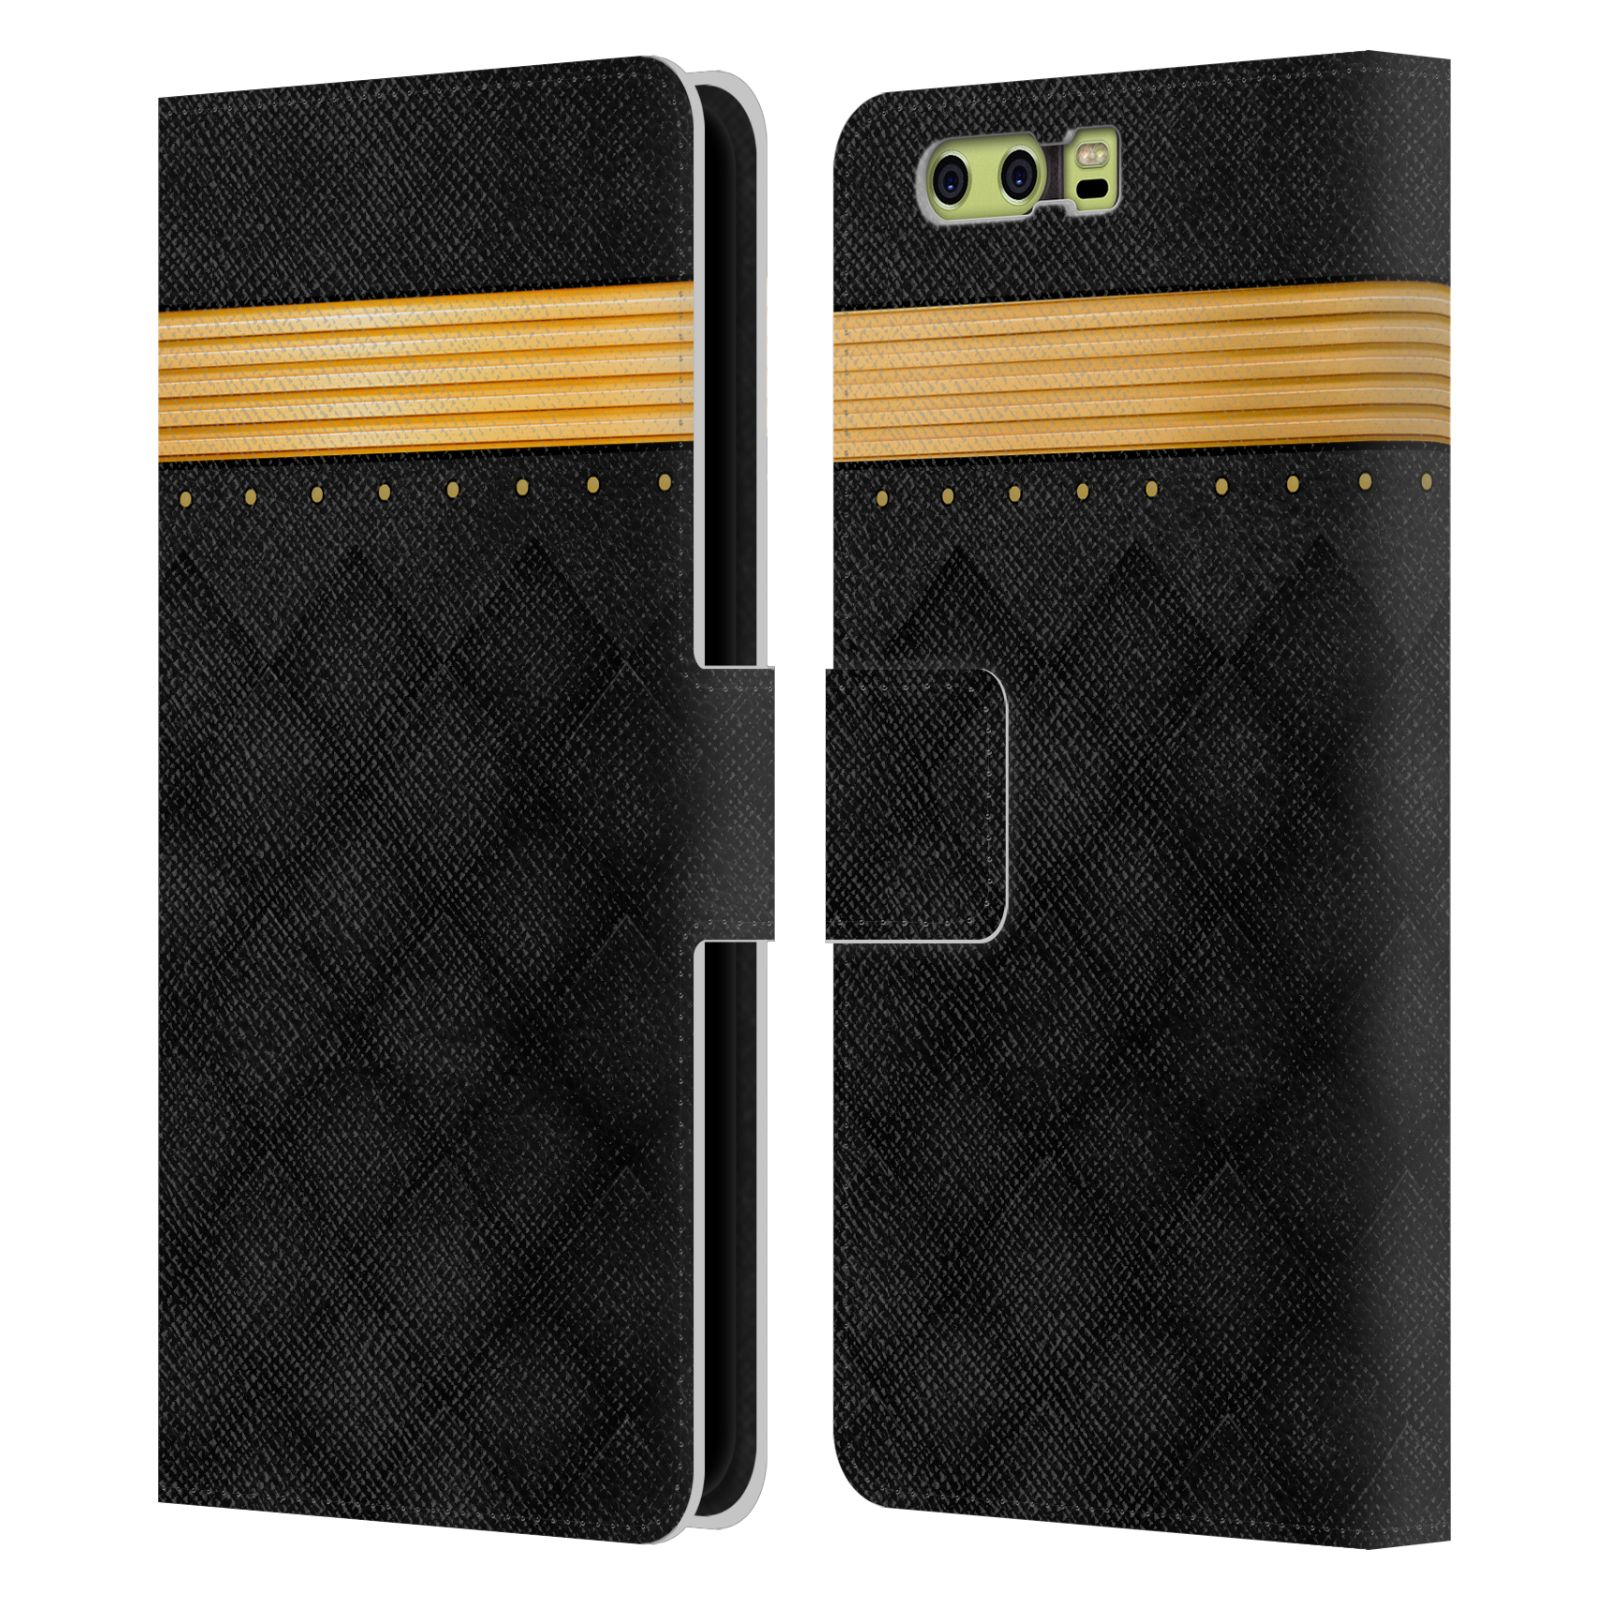 OFFICIAL-ALYN-SPILLER-LUXURY-LEATHER-BOOK-WALLET-CASE-COVER-FOR-HUAWEI-PHONES